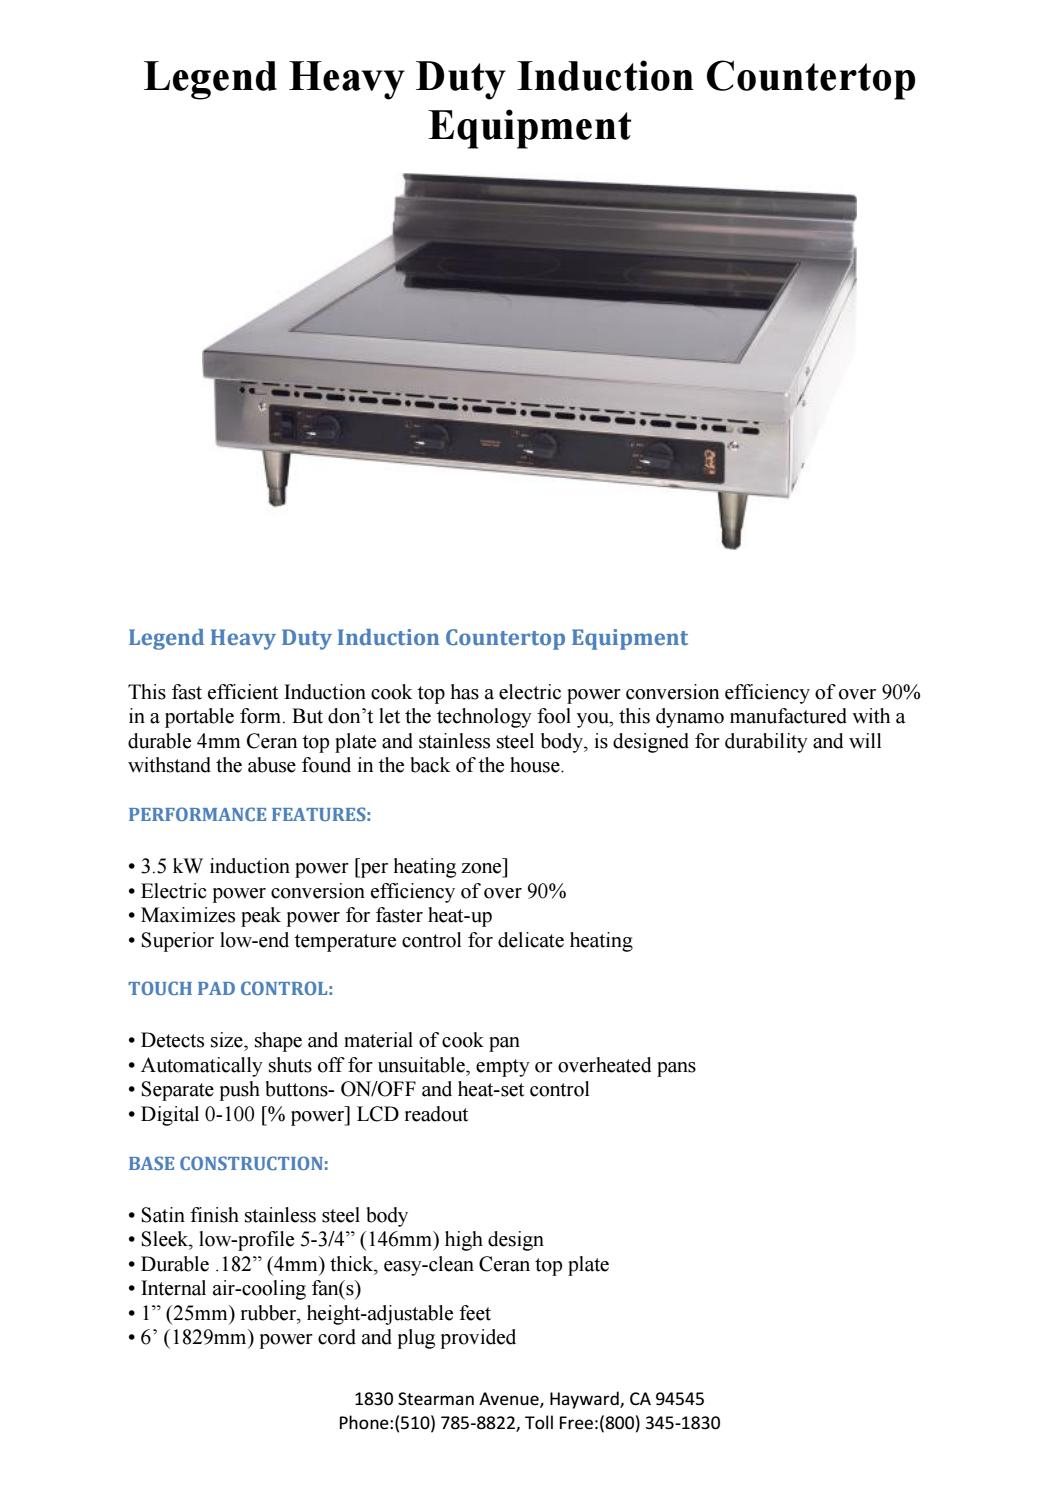 Legend Heavy Duty Induction Countertop Equipment by Montague Company